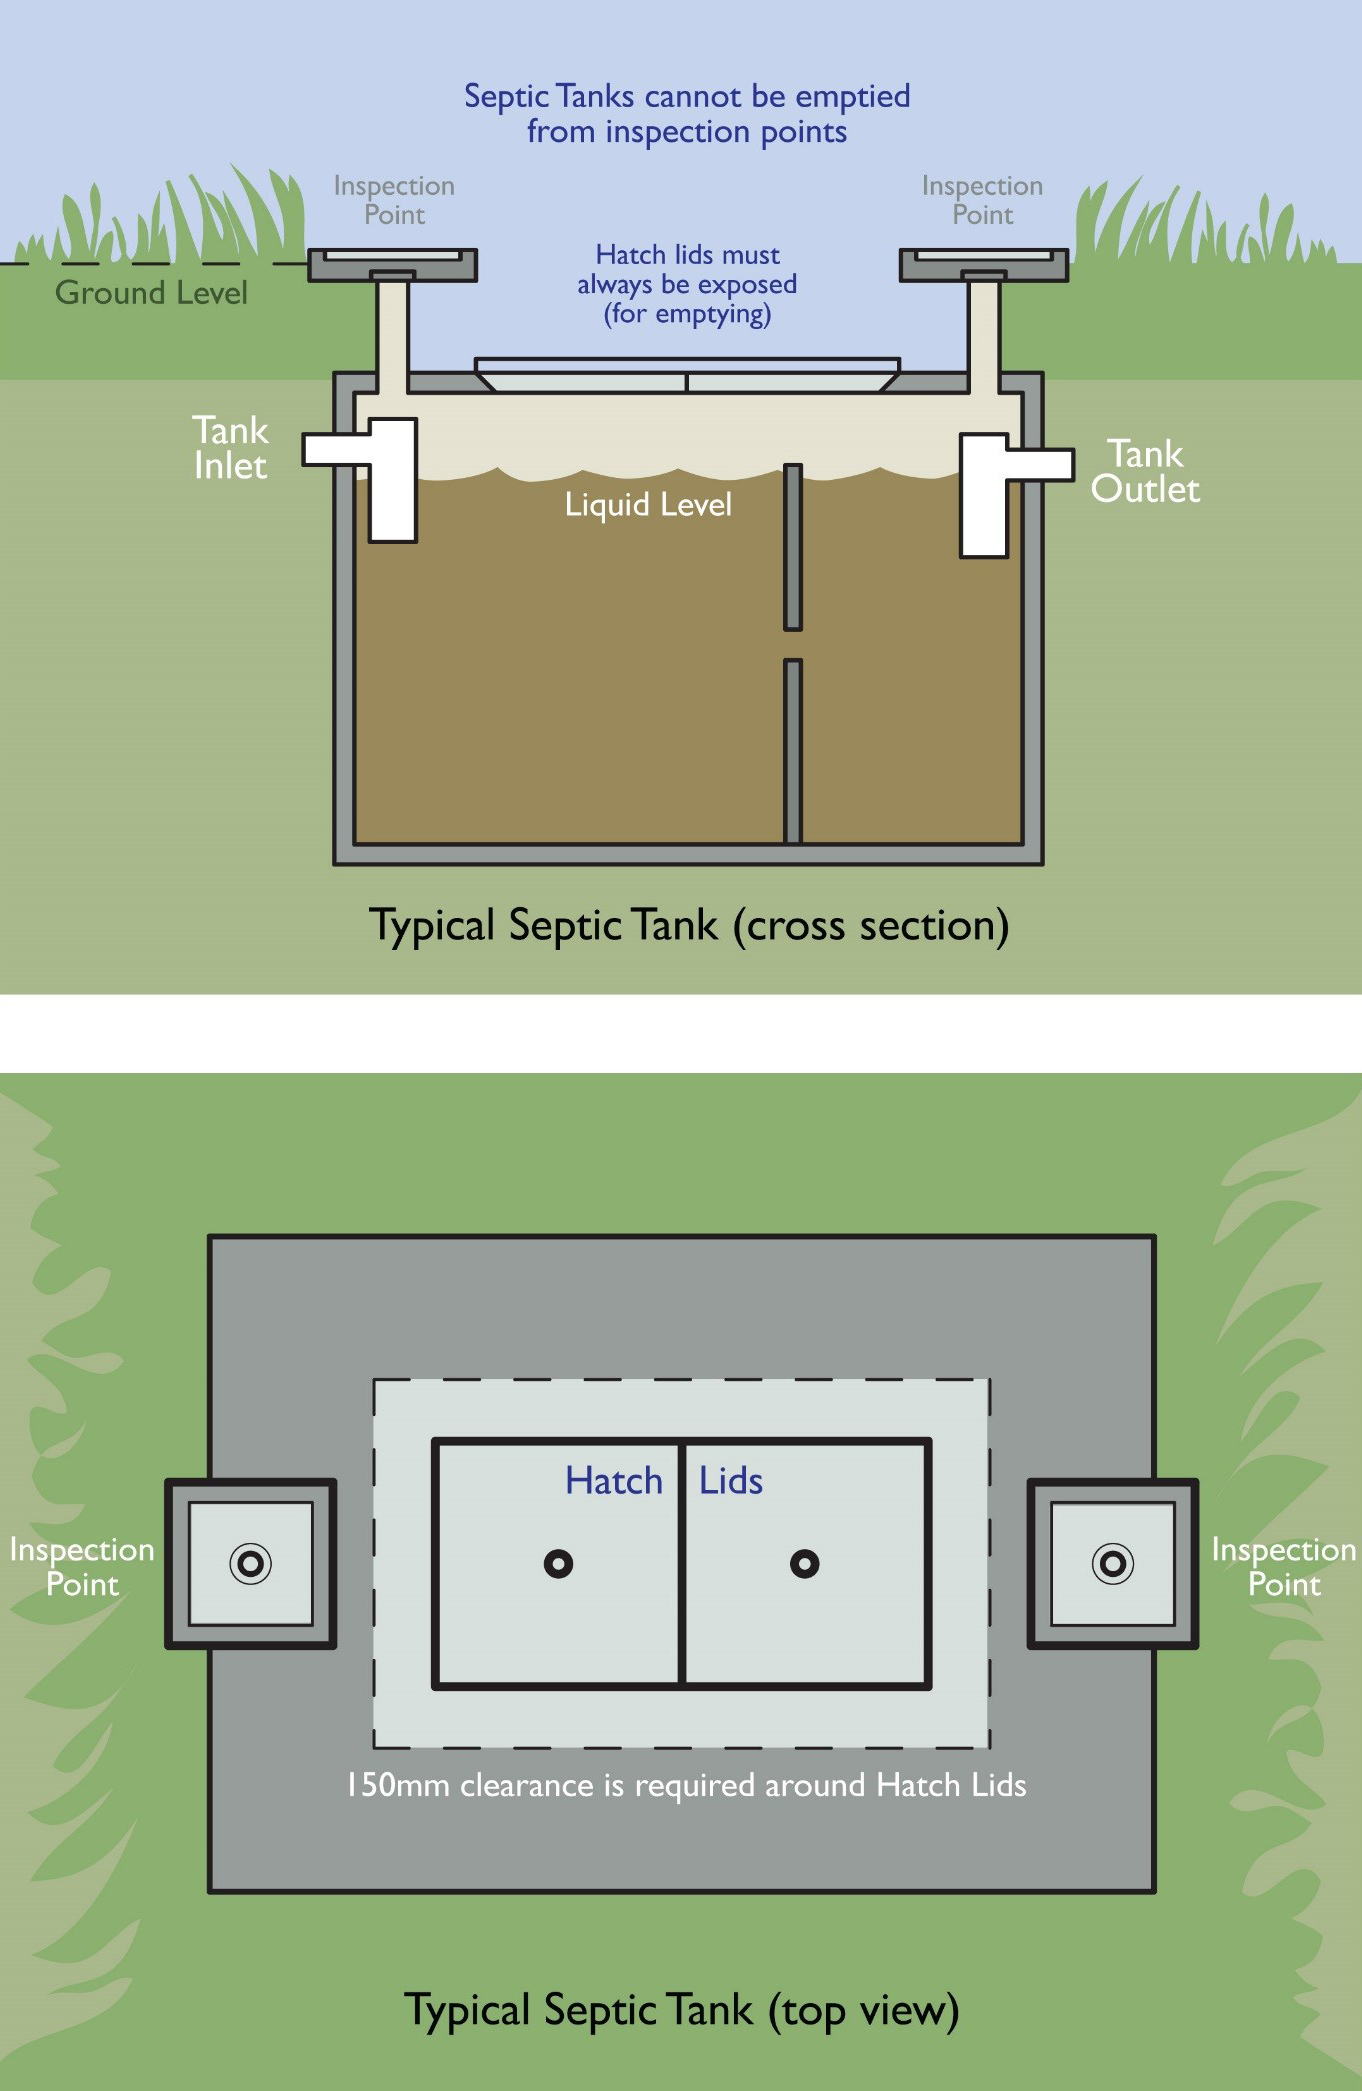 Septic Tank cross section and top view for desludging